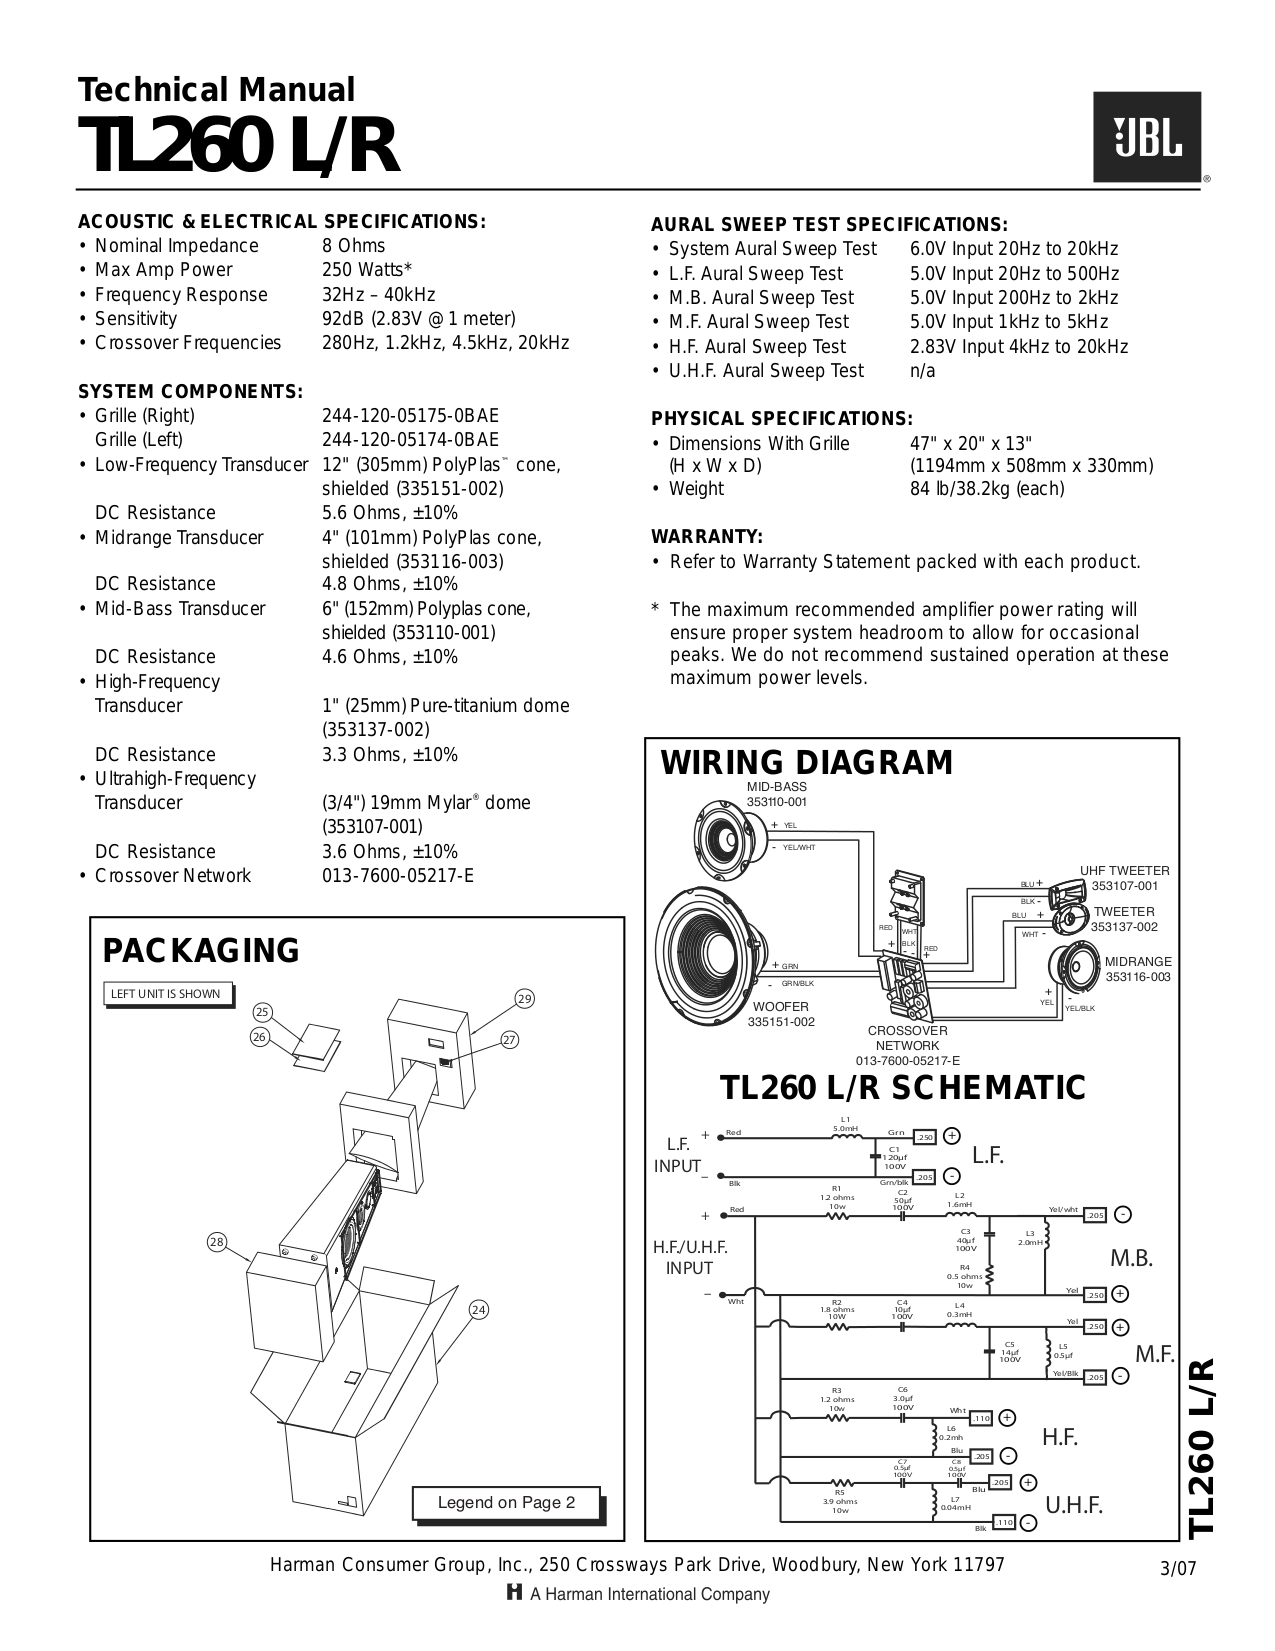 Dbx Crossover Wiring Diagram. Wiring. Wiring Diagrams Instructions